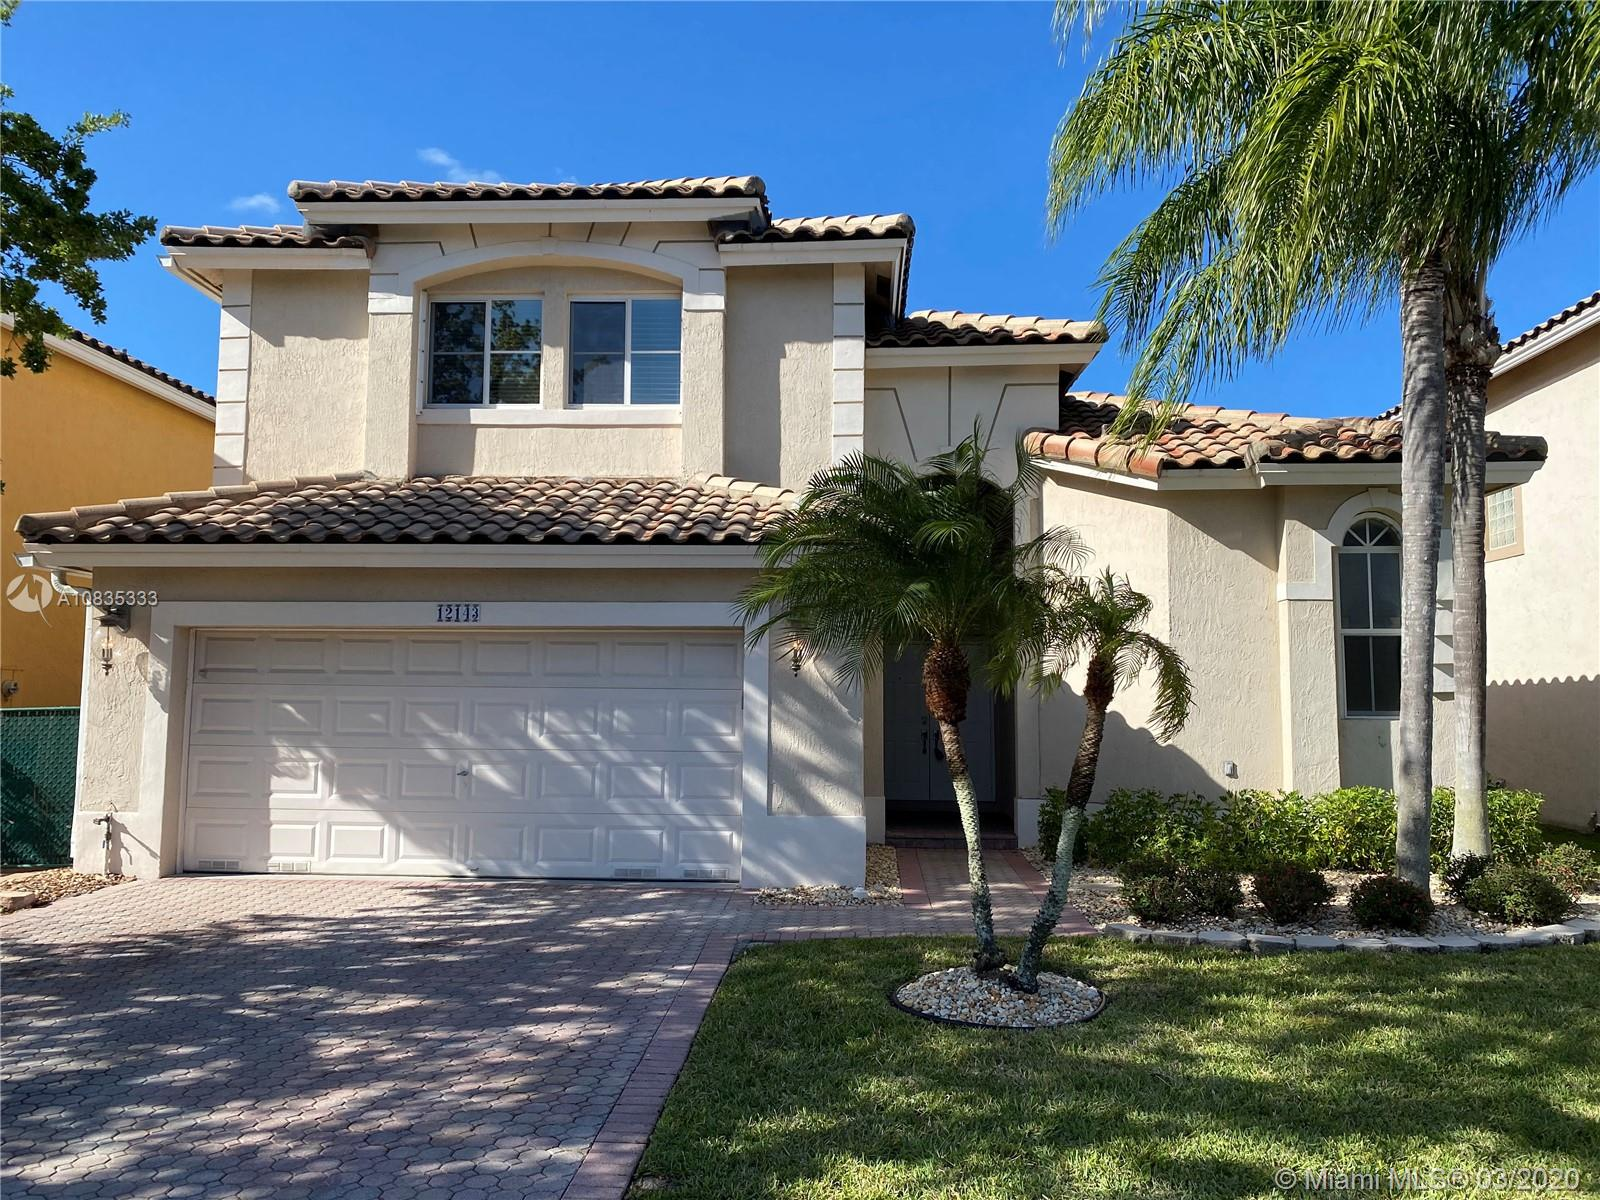 12143 NW 46th St, Coral Springs, FL 33076 - Coral Springs, FL real estate listing